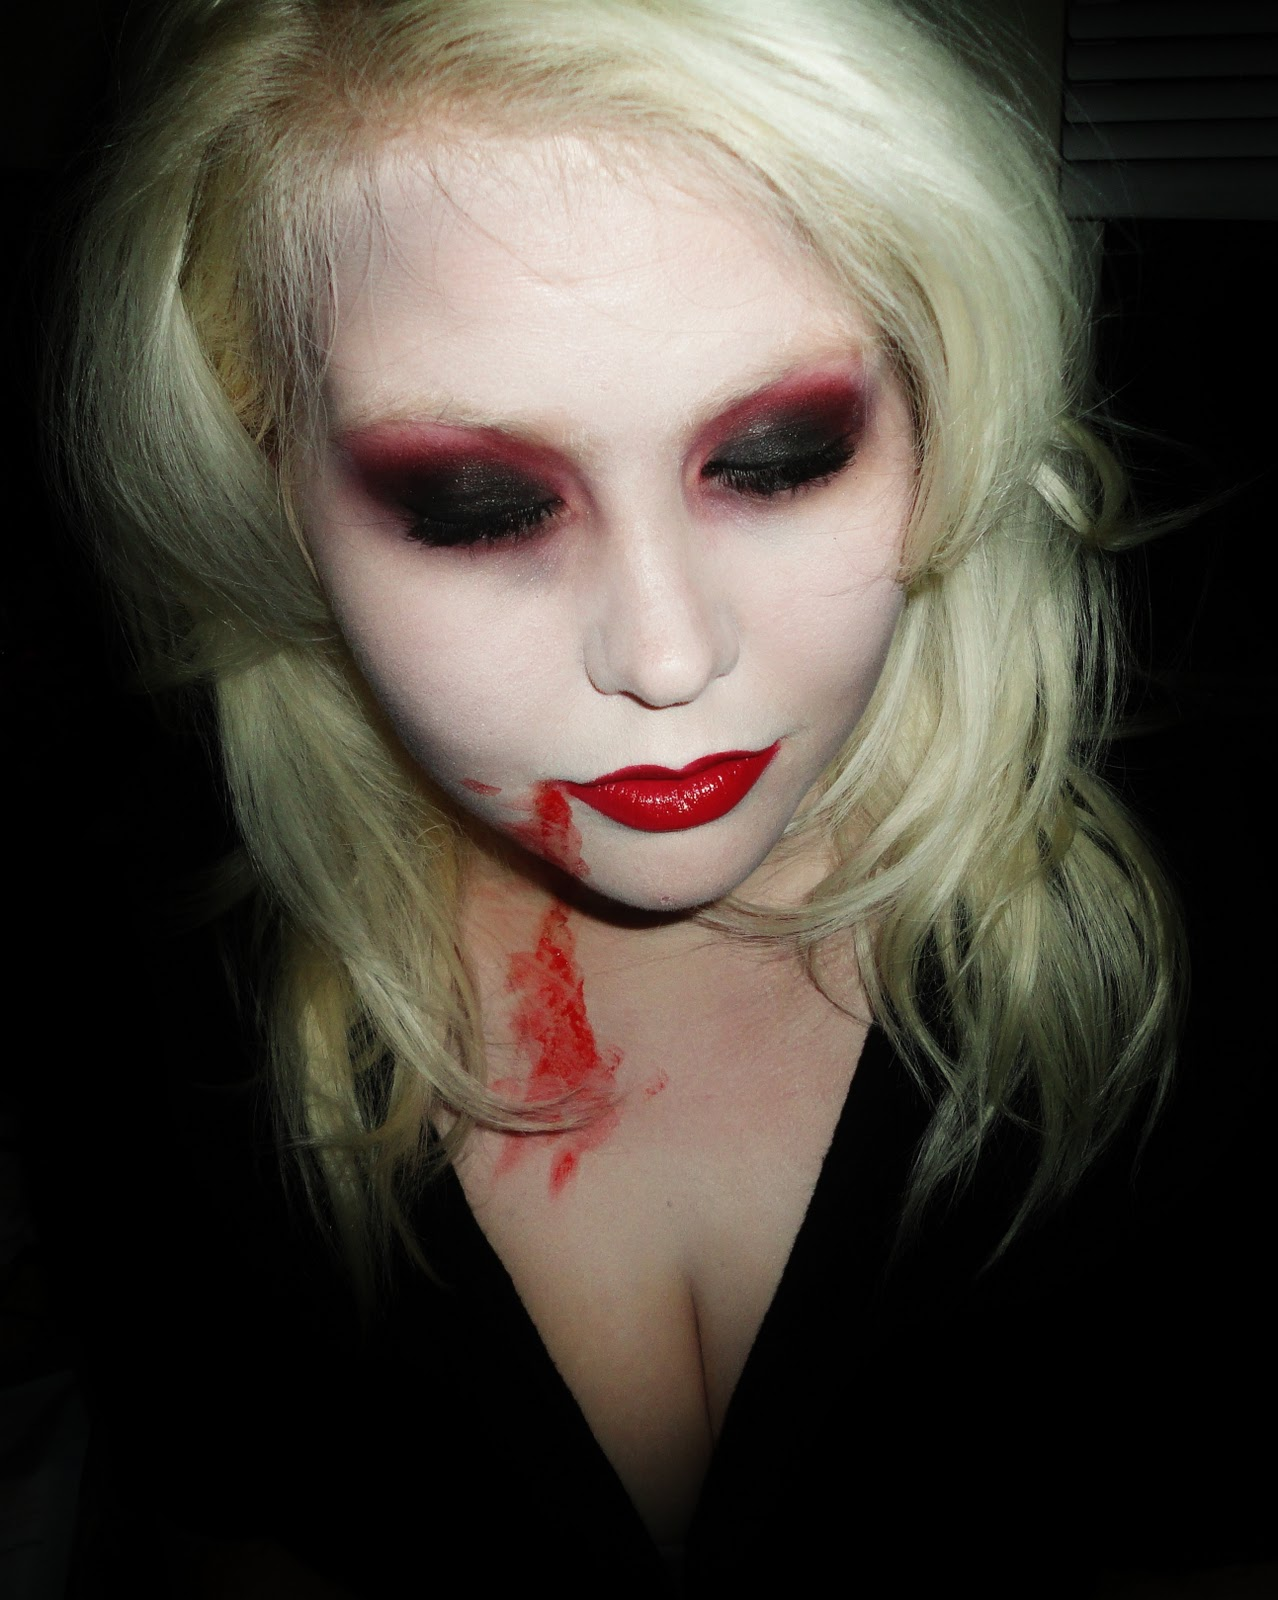 Vampire Makeup Youtube: Saundra's Beauty Corner!: This Isn't Your Average Sparkly